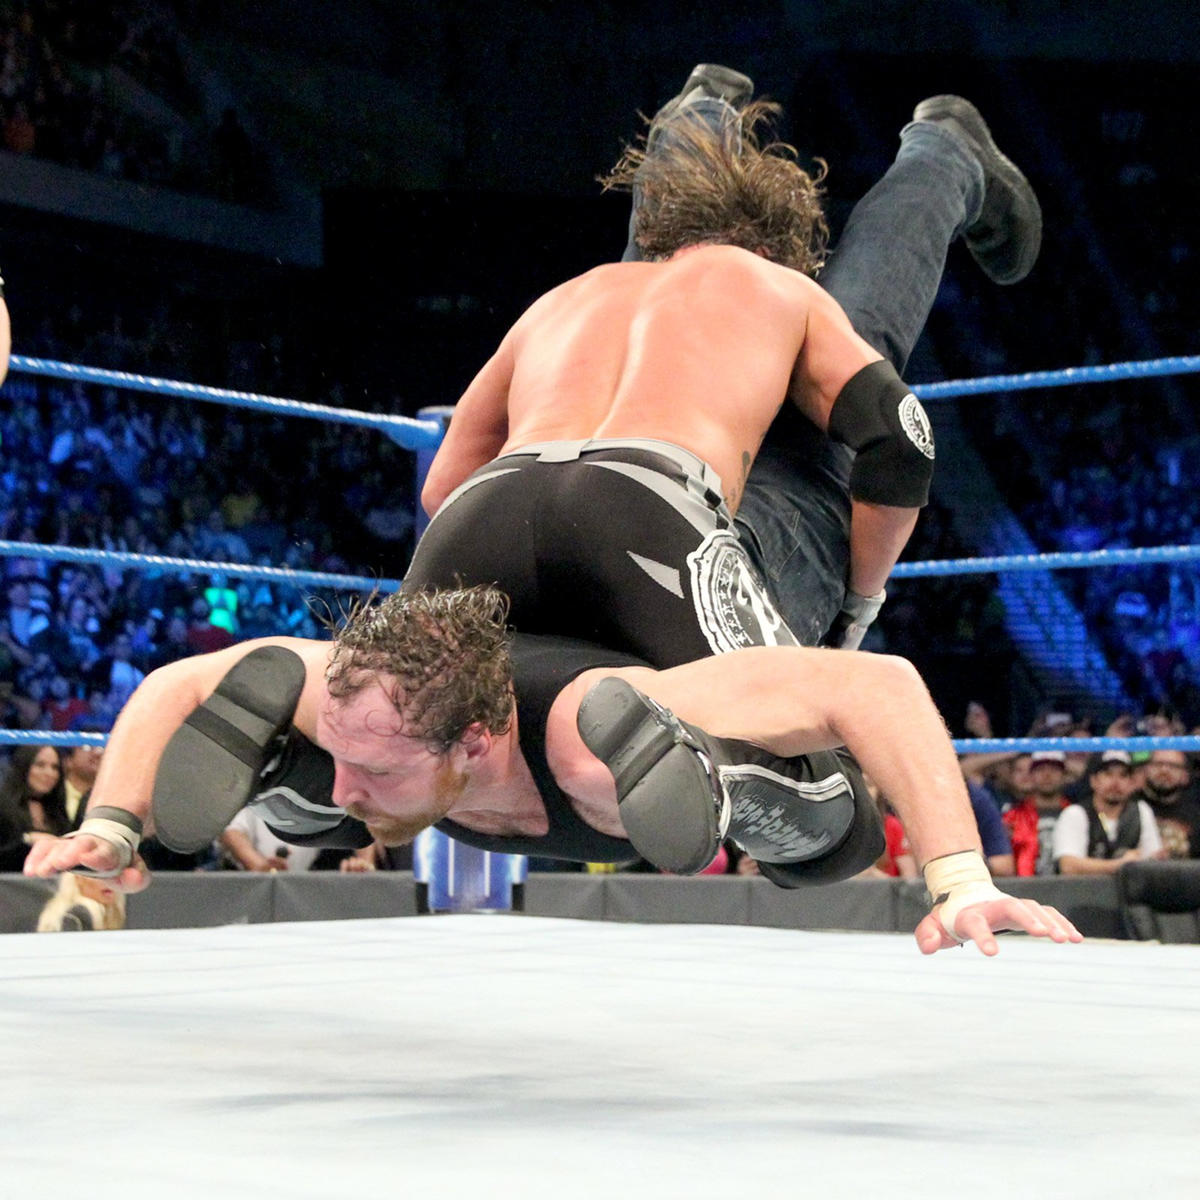 This allows Styles to capitalize with the Styles Clash on Ambrose for the win.